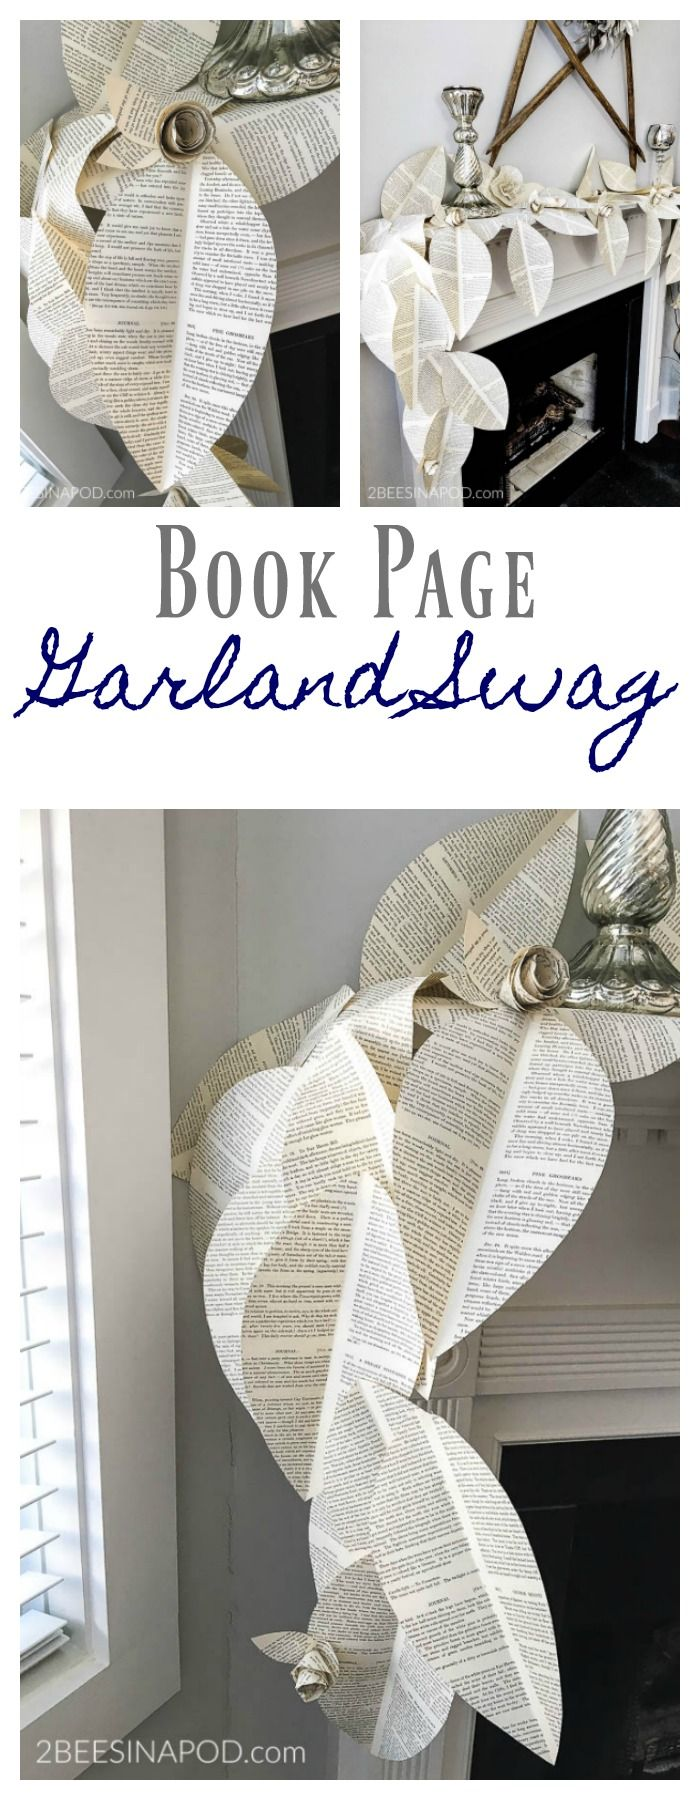 Book Page Garland Swag. book page roses. large book page leaves. best book page projects. vintage book page garland. book page swag.